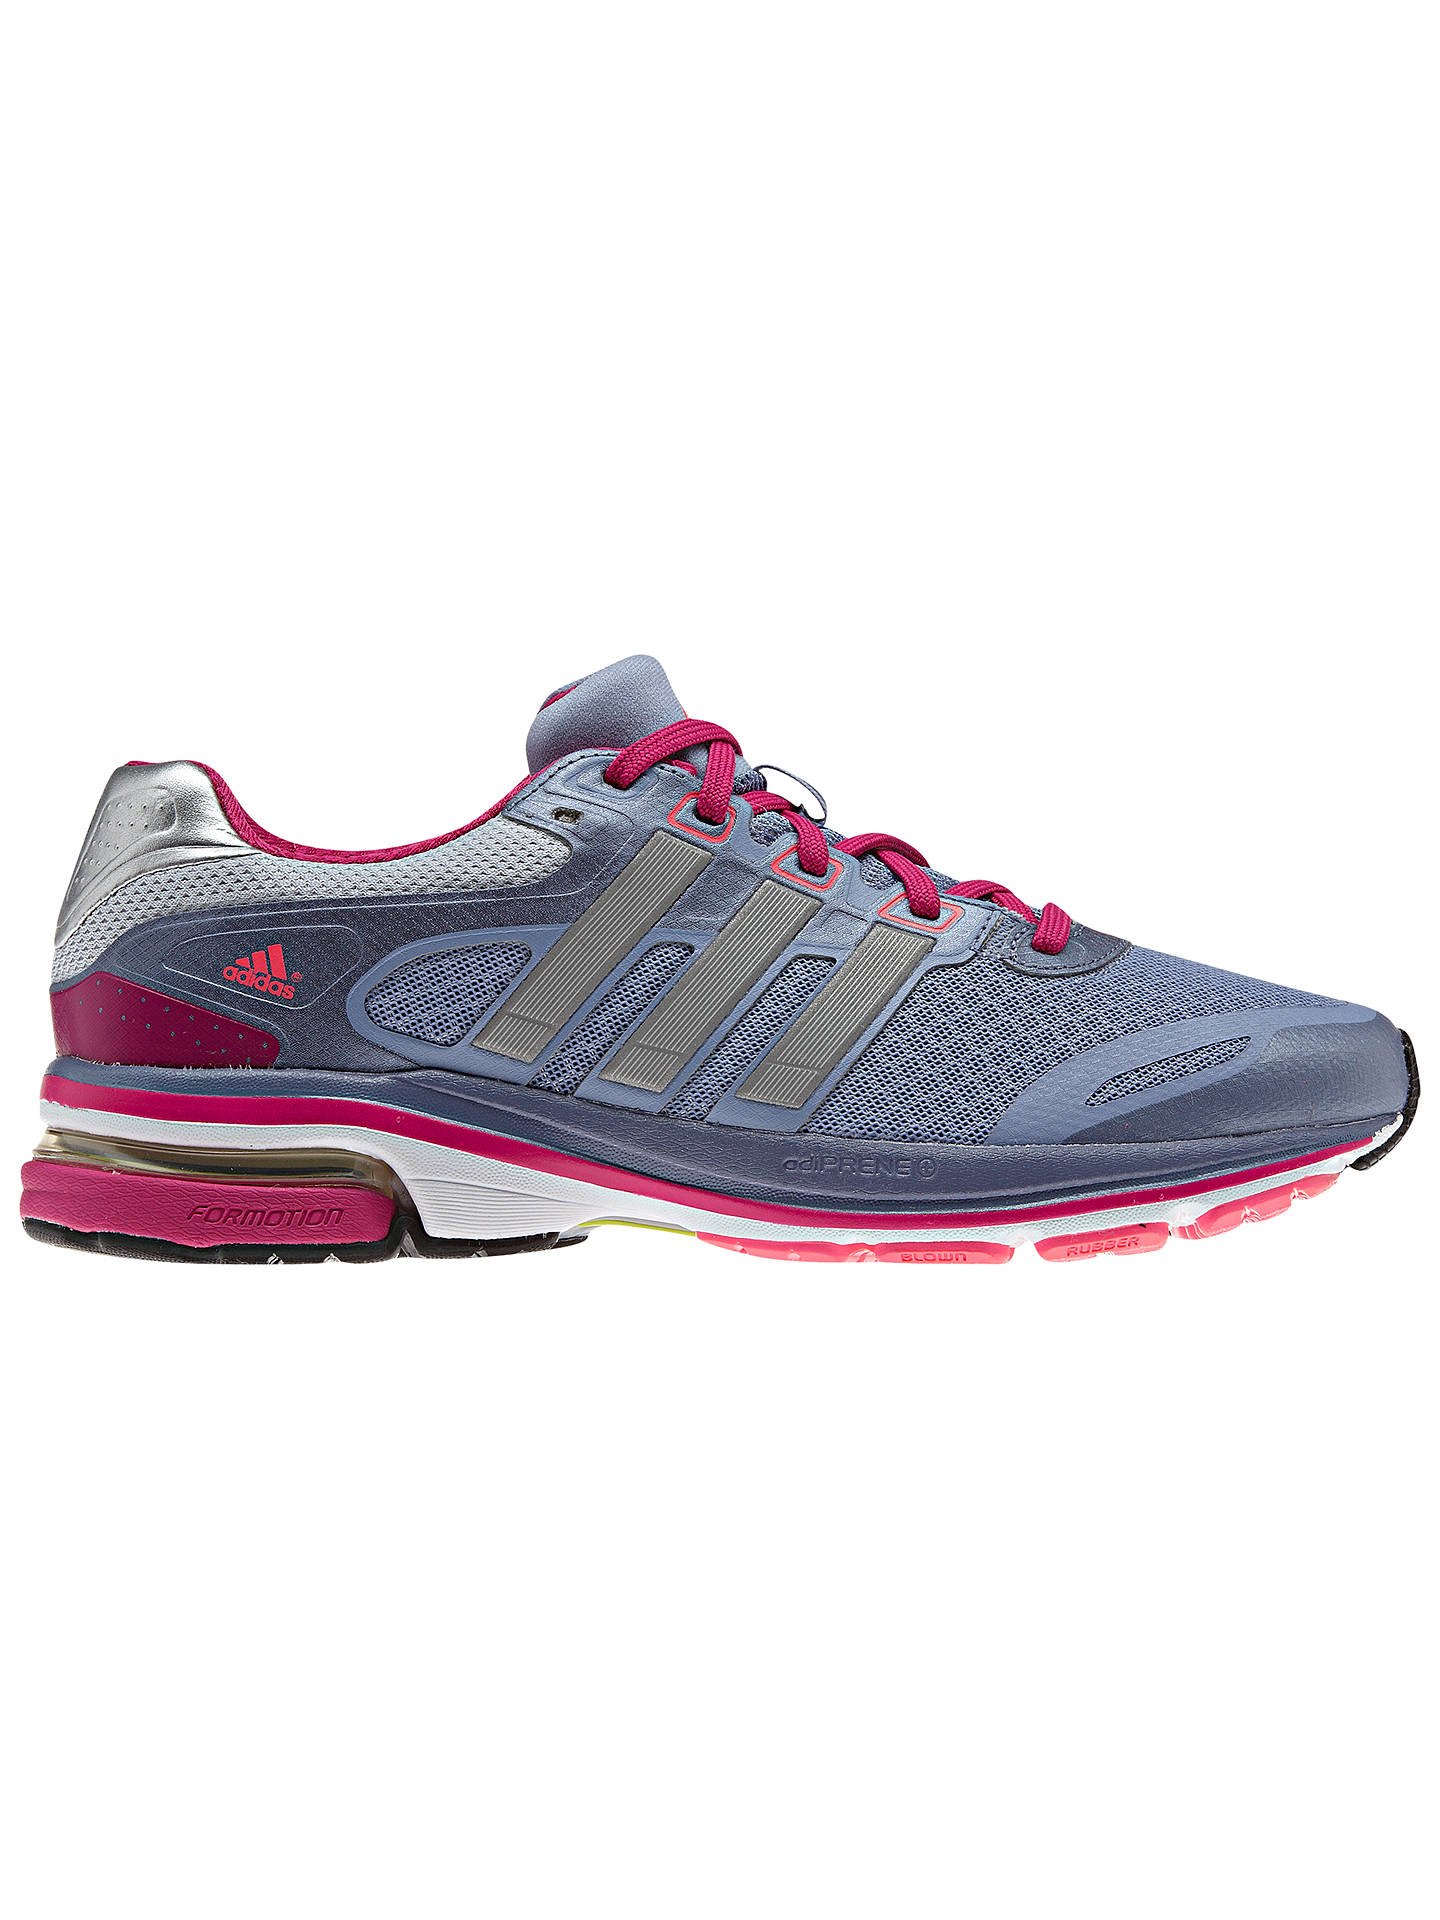 29b4358210761 Adidas Women s Supernova Glide 5 Running Shoes at John Lewis   Partners